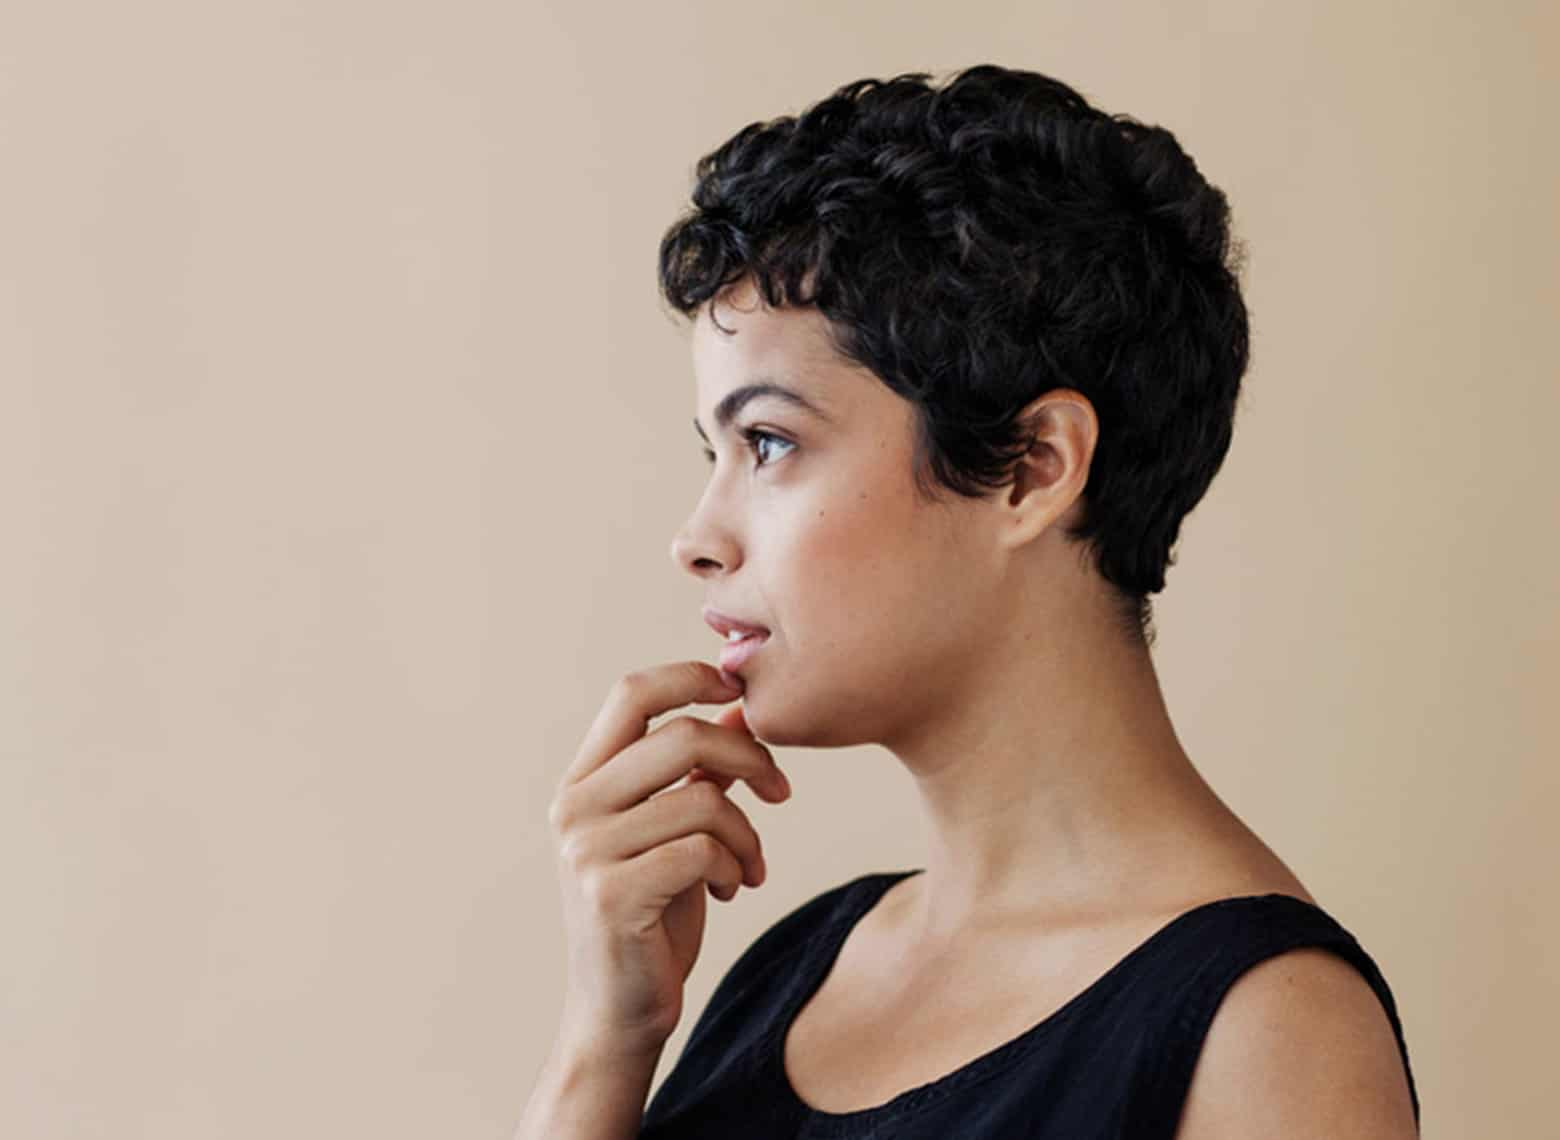 woman with retro curled pixie